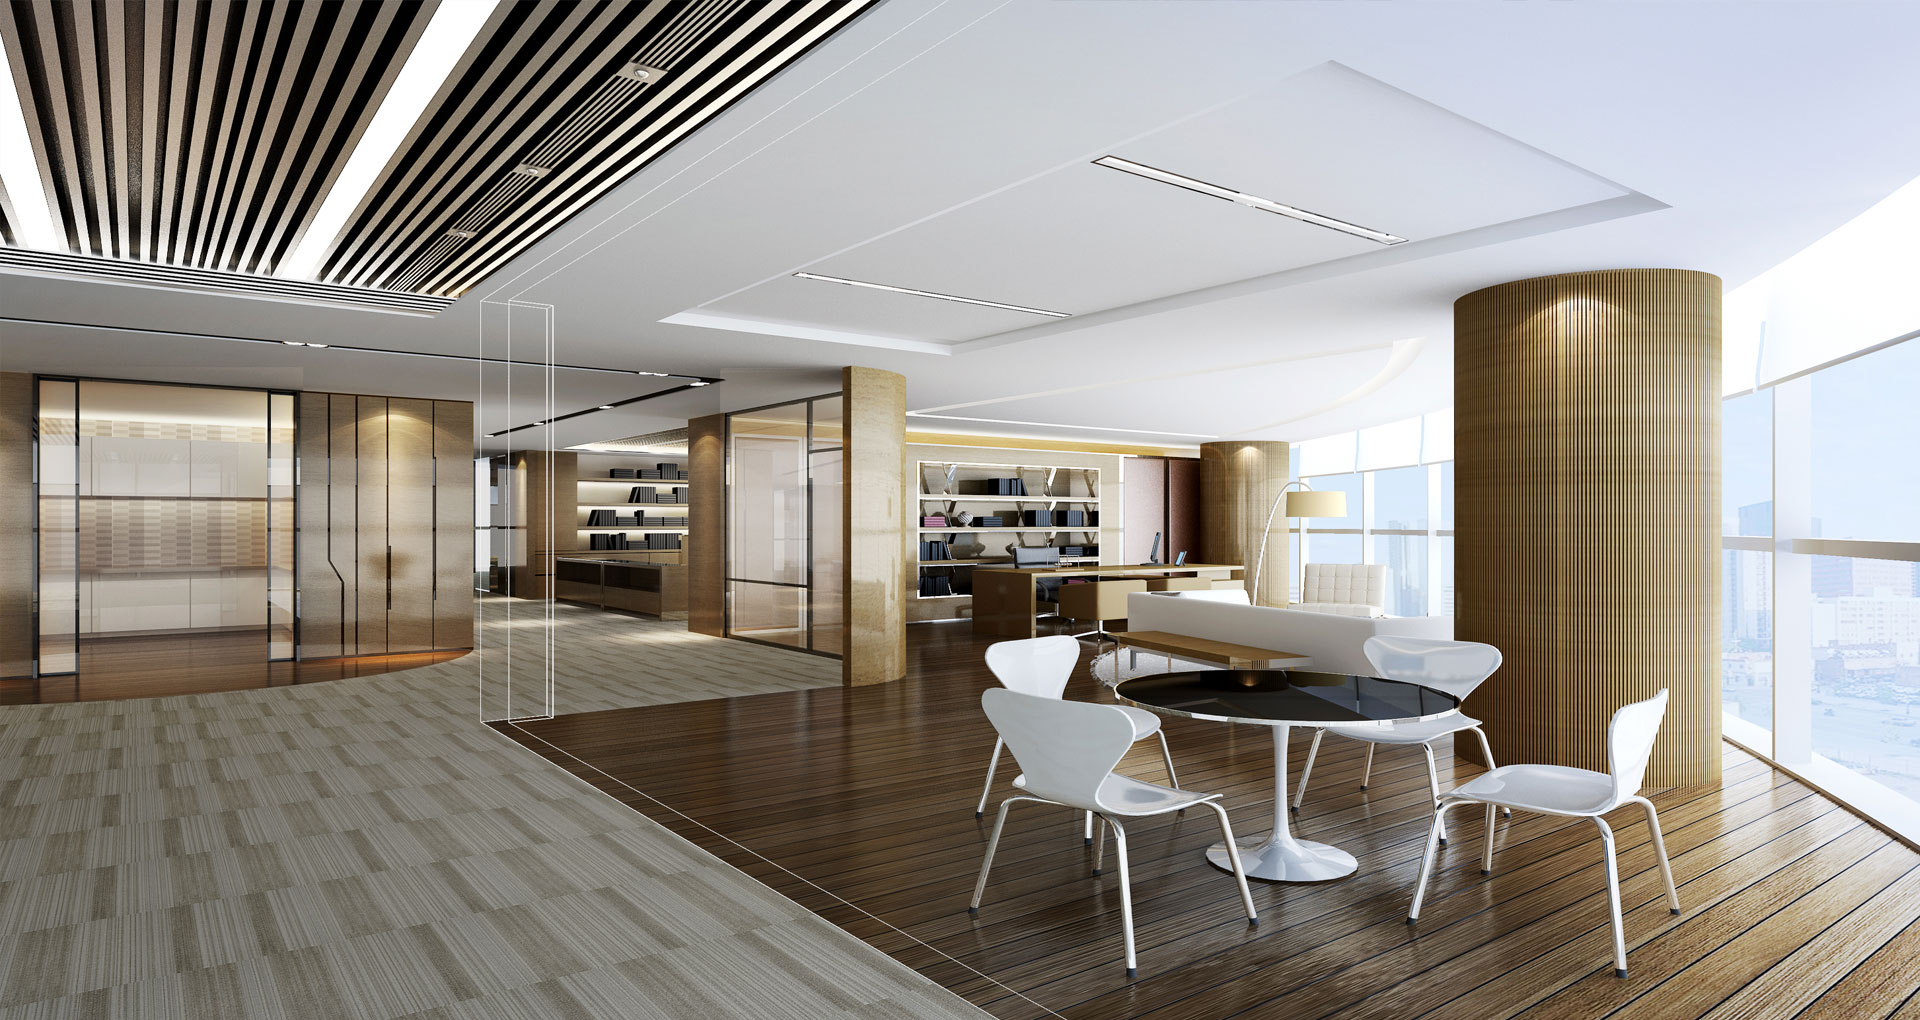 Office interior design inpro concepts design - Office interior ...